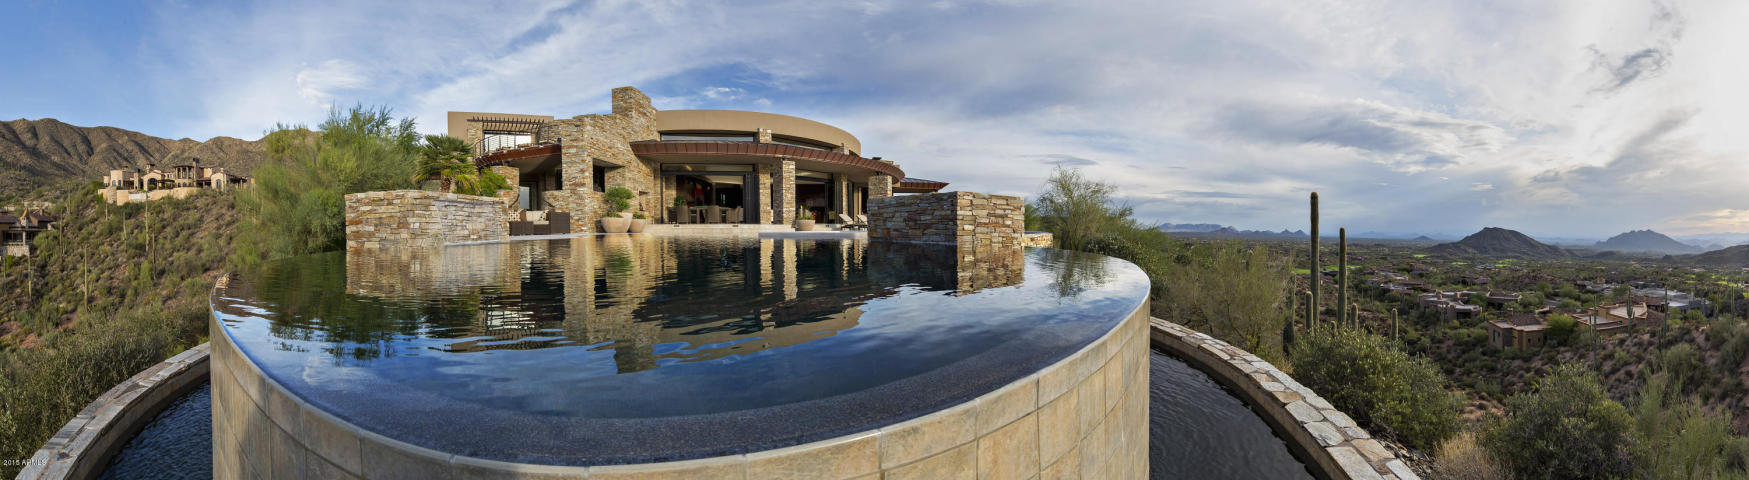 2016-phoenix-scottsdale-paradise-valley-most-expensive-homes-sold-17